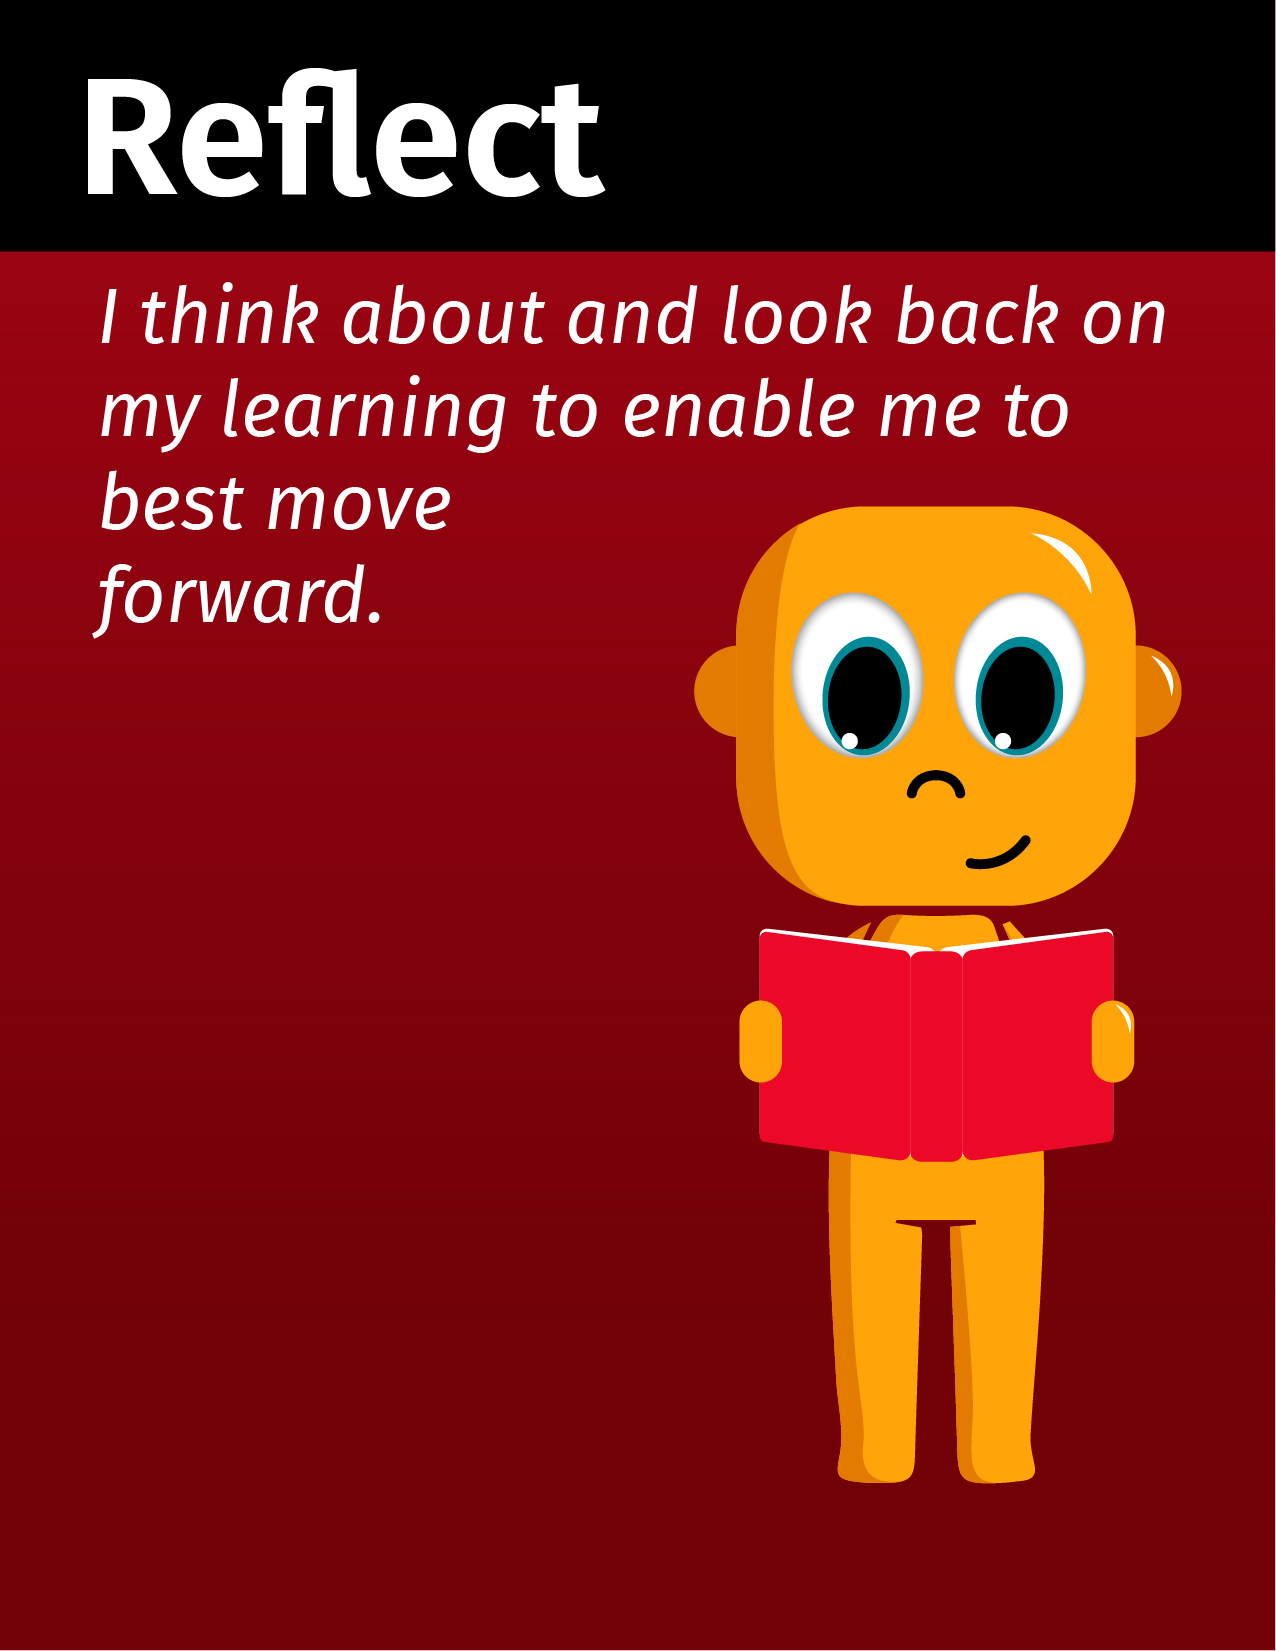 Graphical Learner reflecting and stating I think about and look back on my learning to enable me to best move forward